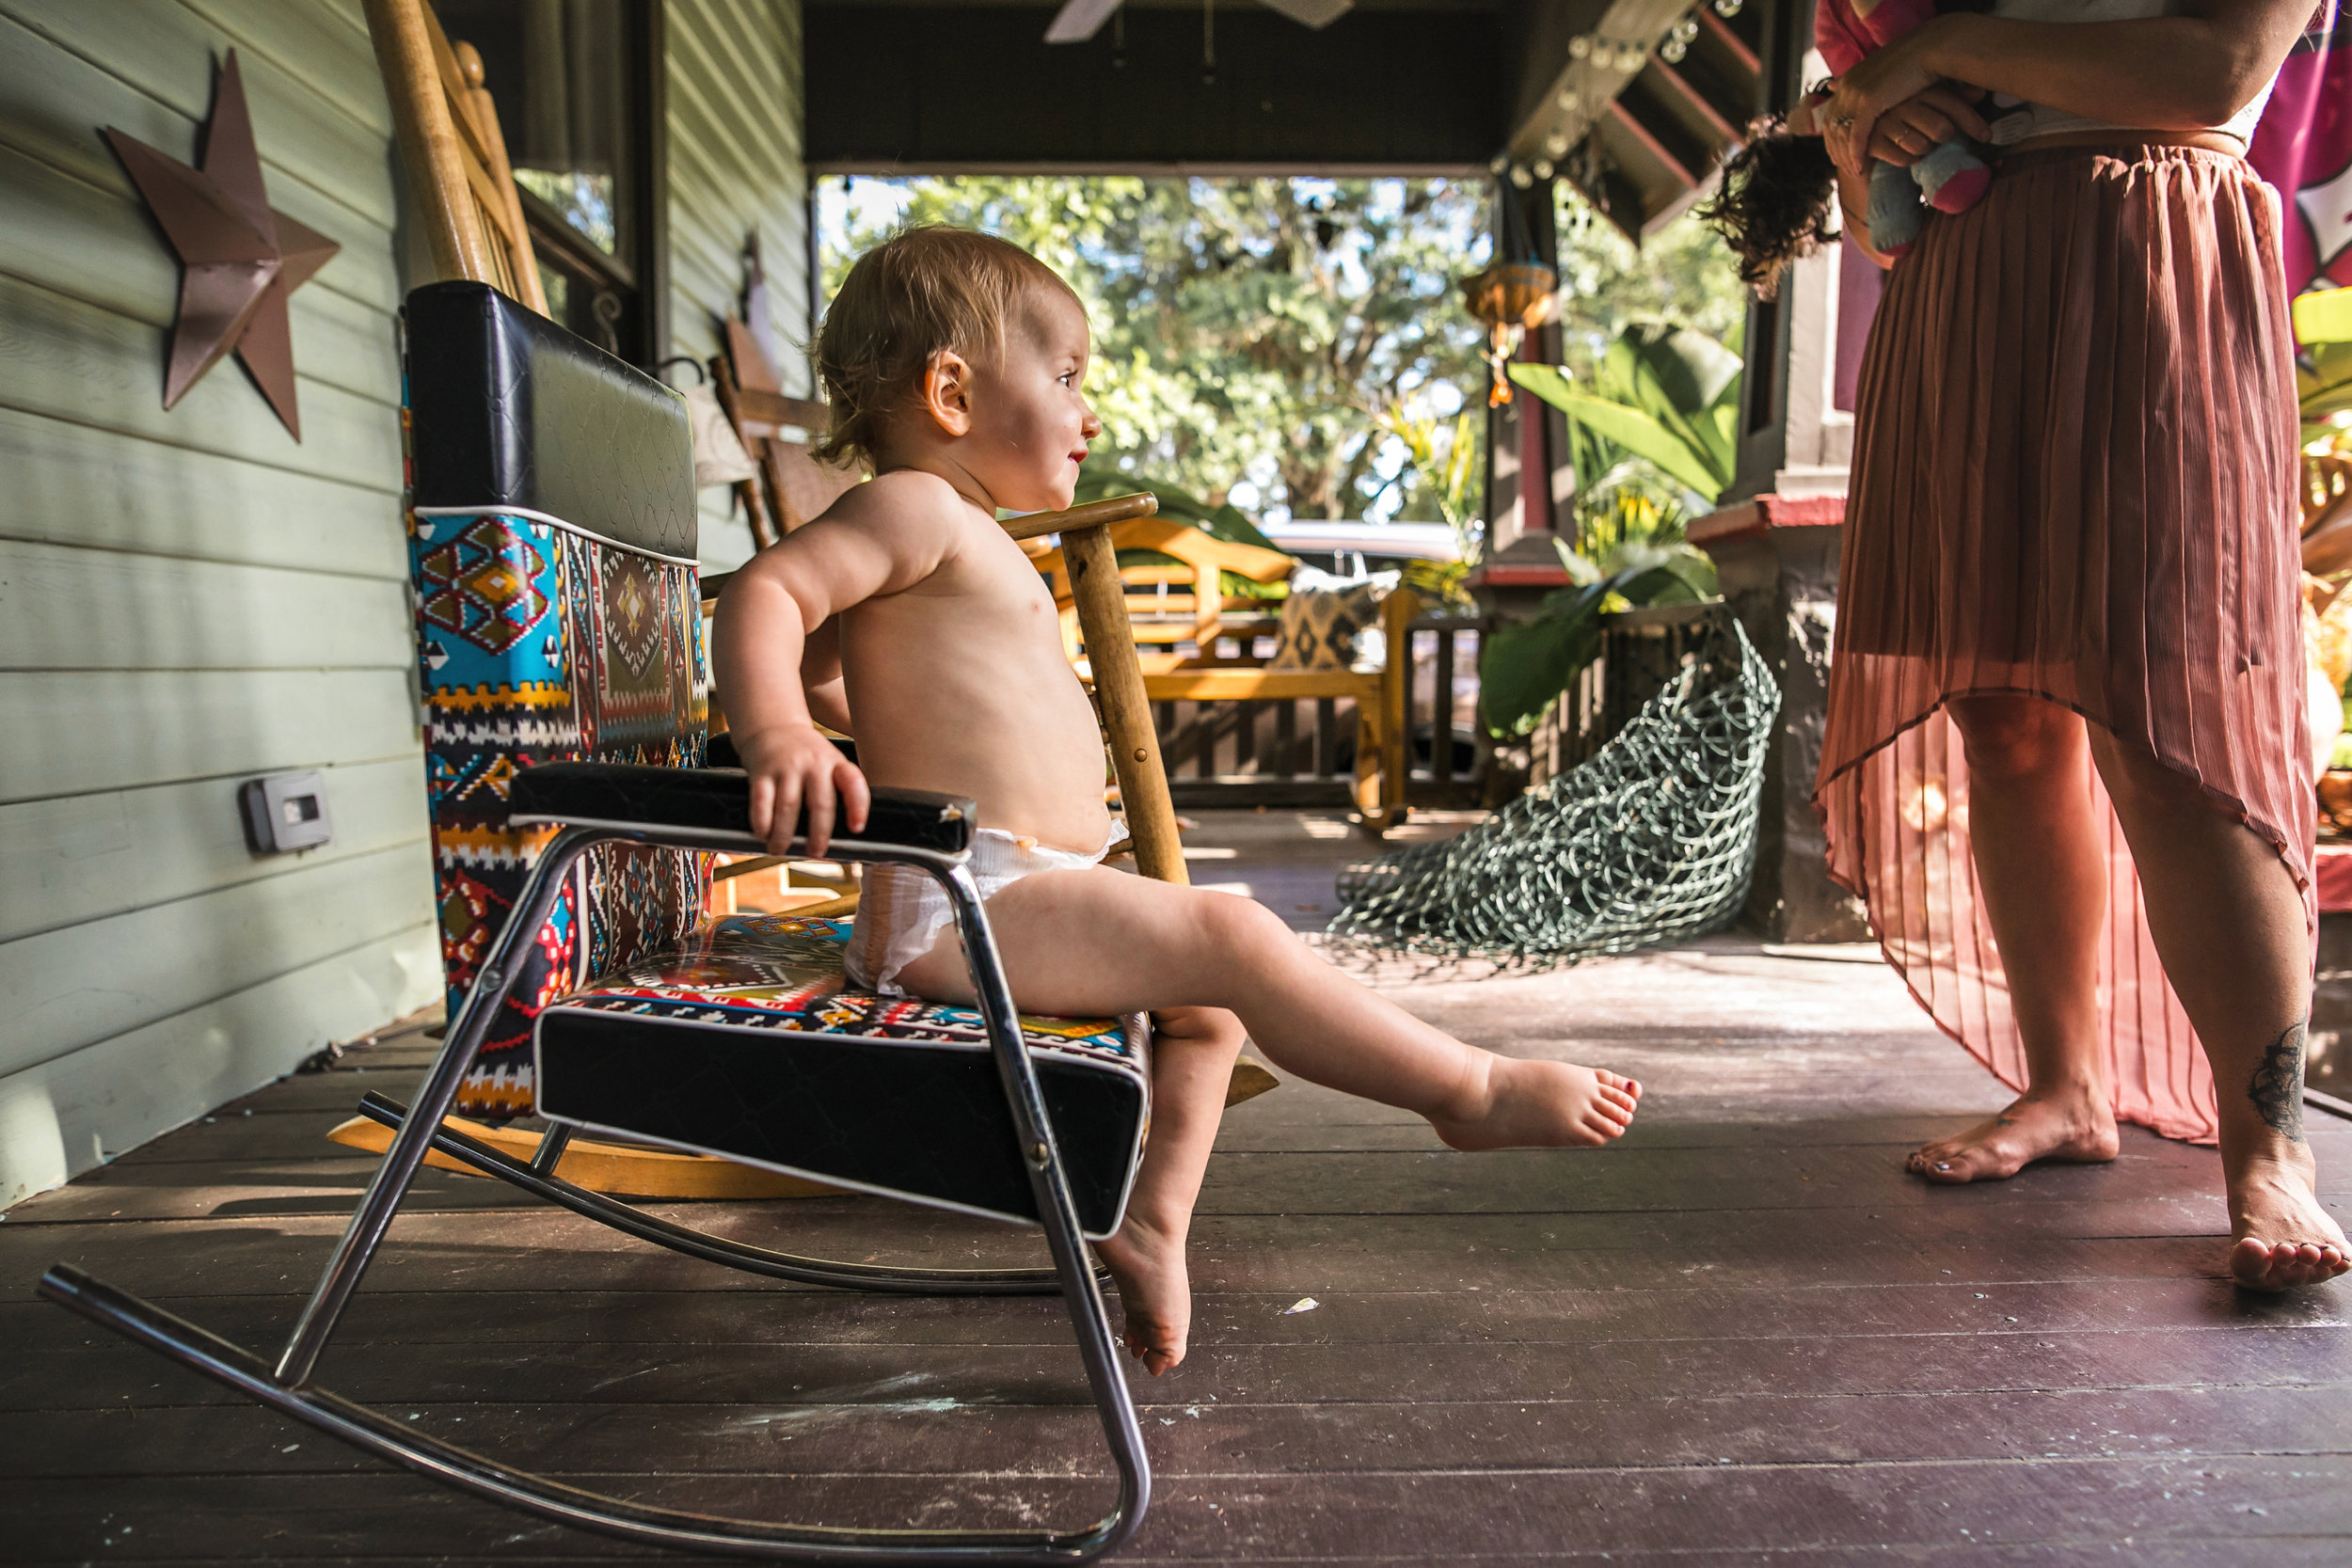 baby sits in rocking chair on front porch wearing a diaper 4-(ZF-0126-04493-1-033).jpg